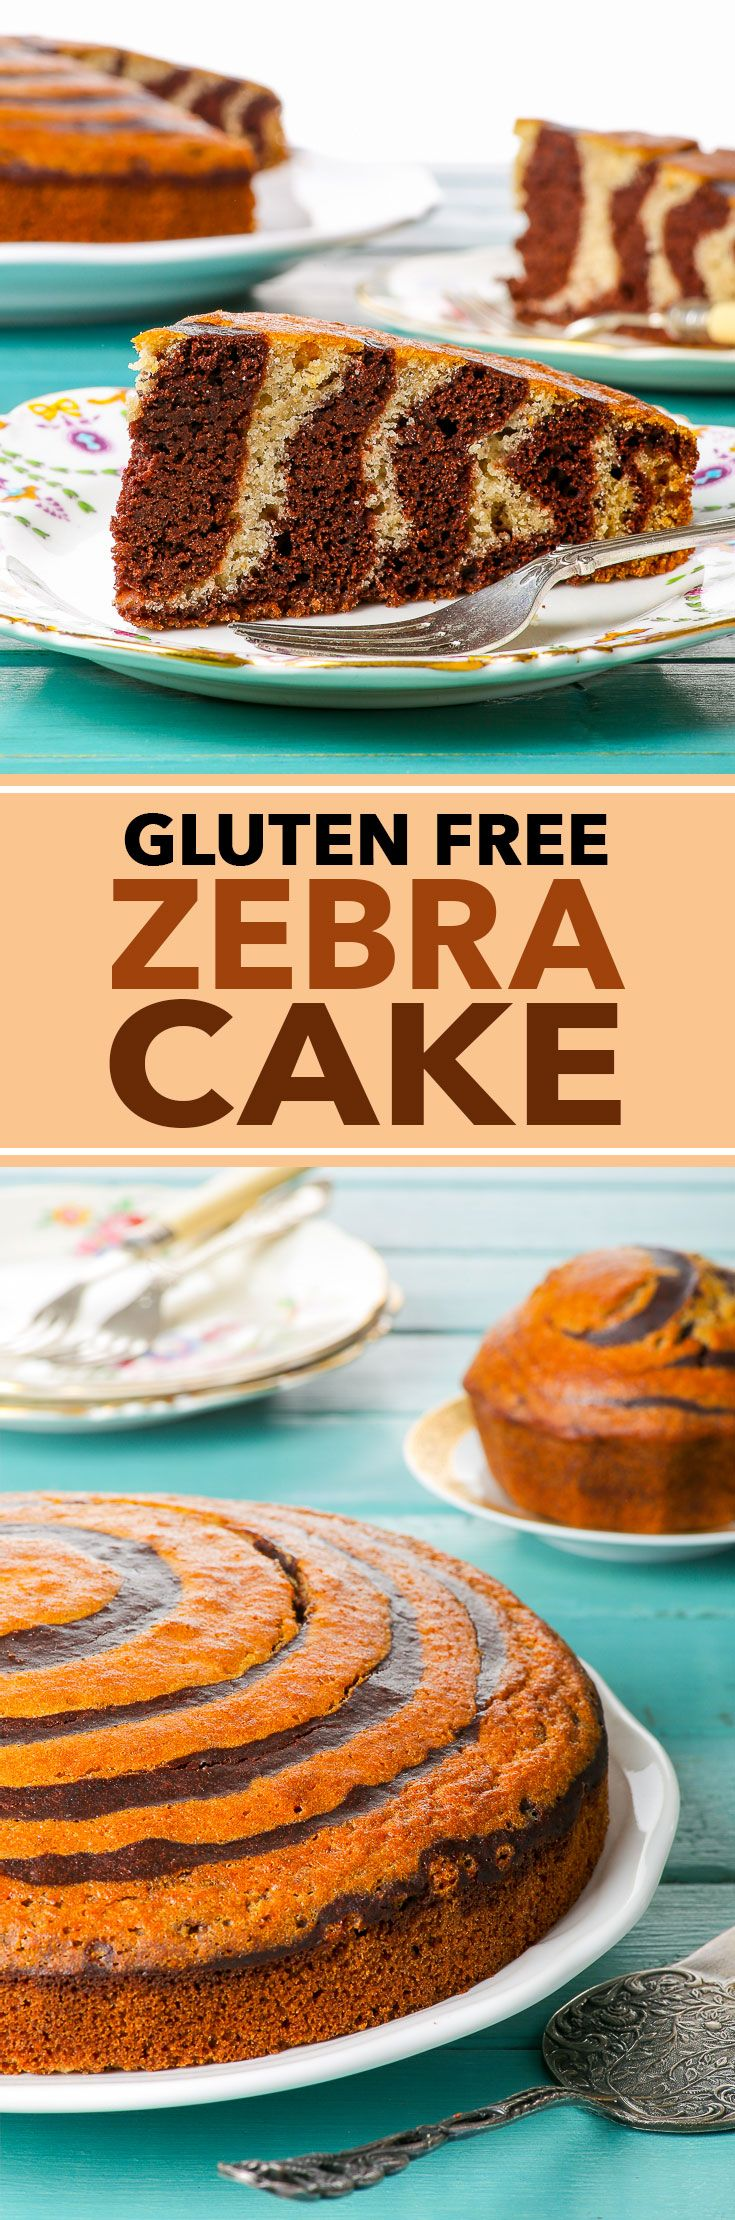 Gluten Free Zebra Cake - This fun and delicious chocolate and vanilla gluten free zebra cake is super easy to make and bound to impress just about anyone. Chocolate and vanilla batters complement each other perfectly in this sweet, moist and airy cake that is suitable for all occasions, from posh afternoon tea to a children's party, on its own or frosted in buttercream, dusted with icing sugar, or smothered in chocolate ganache.